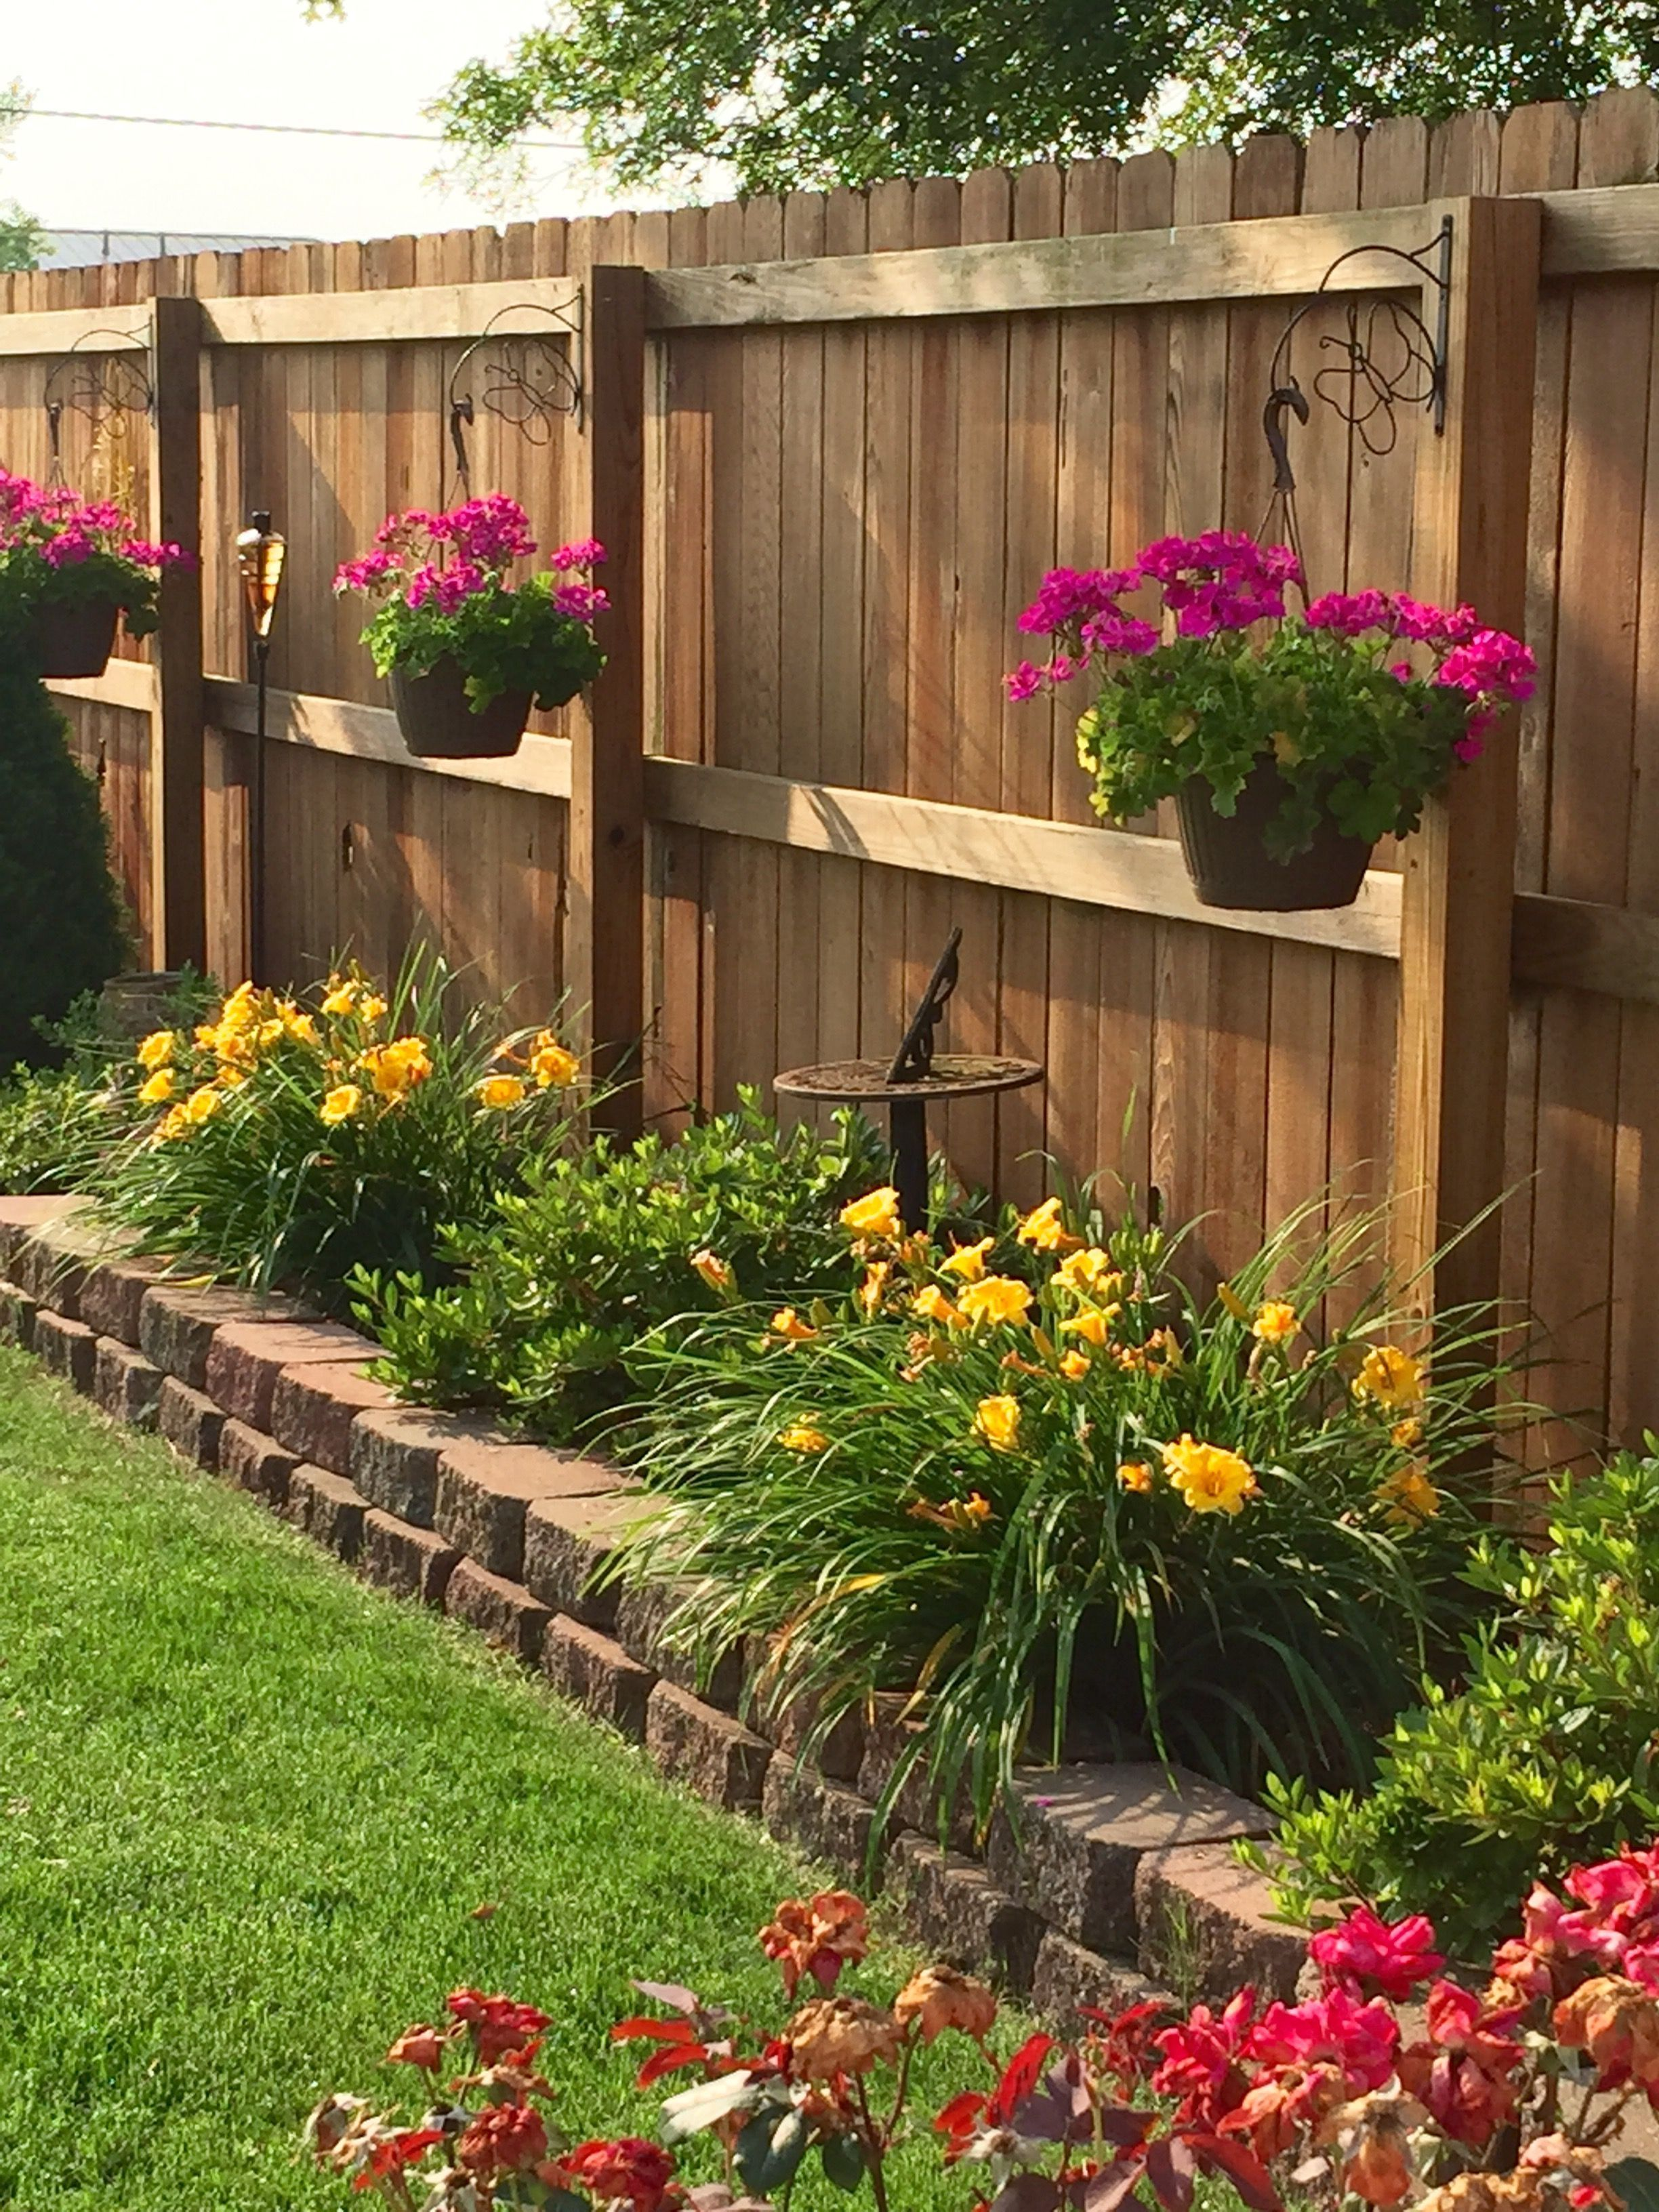 Cheap Landscaping Ideas Backyard Landscaping Yard: All About Backyard Landscaping Ideas On A Budget, Small, Layout, Patio, Low Maintenan… (With